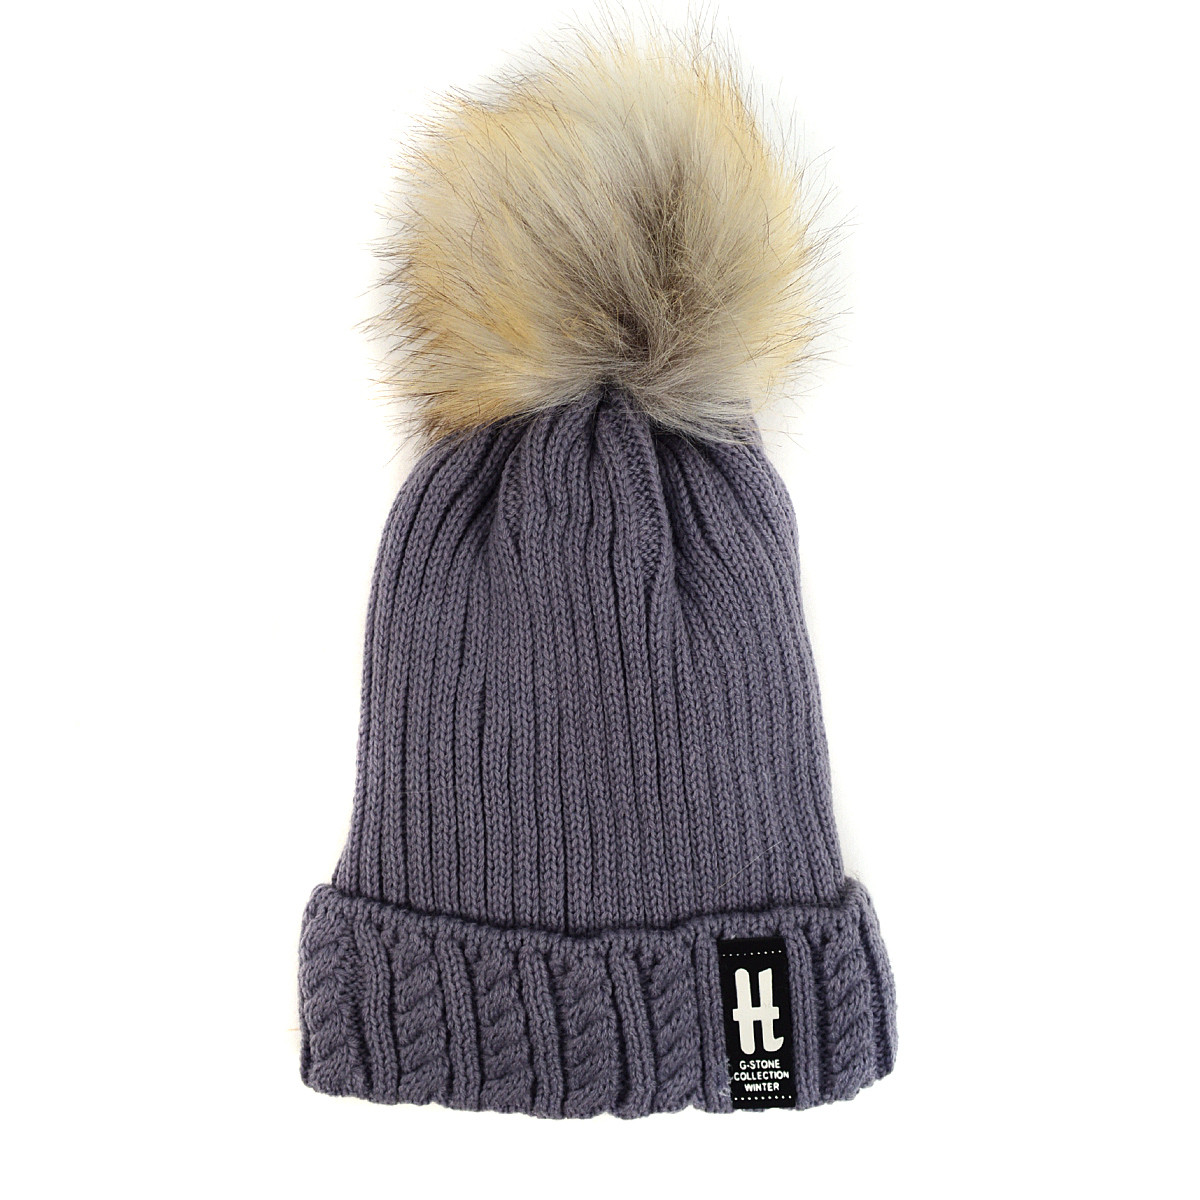 Kid's Ribbed & Cable Knit Pom Pom Ski Hats KPH1701